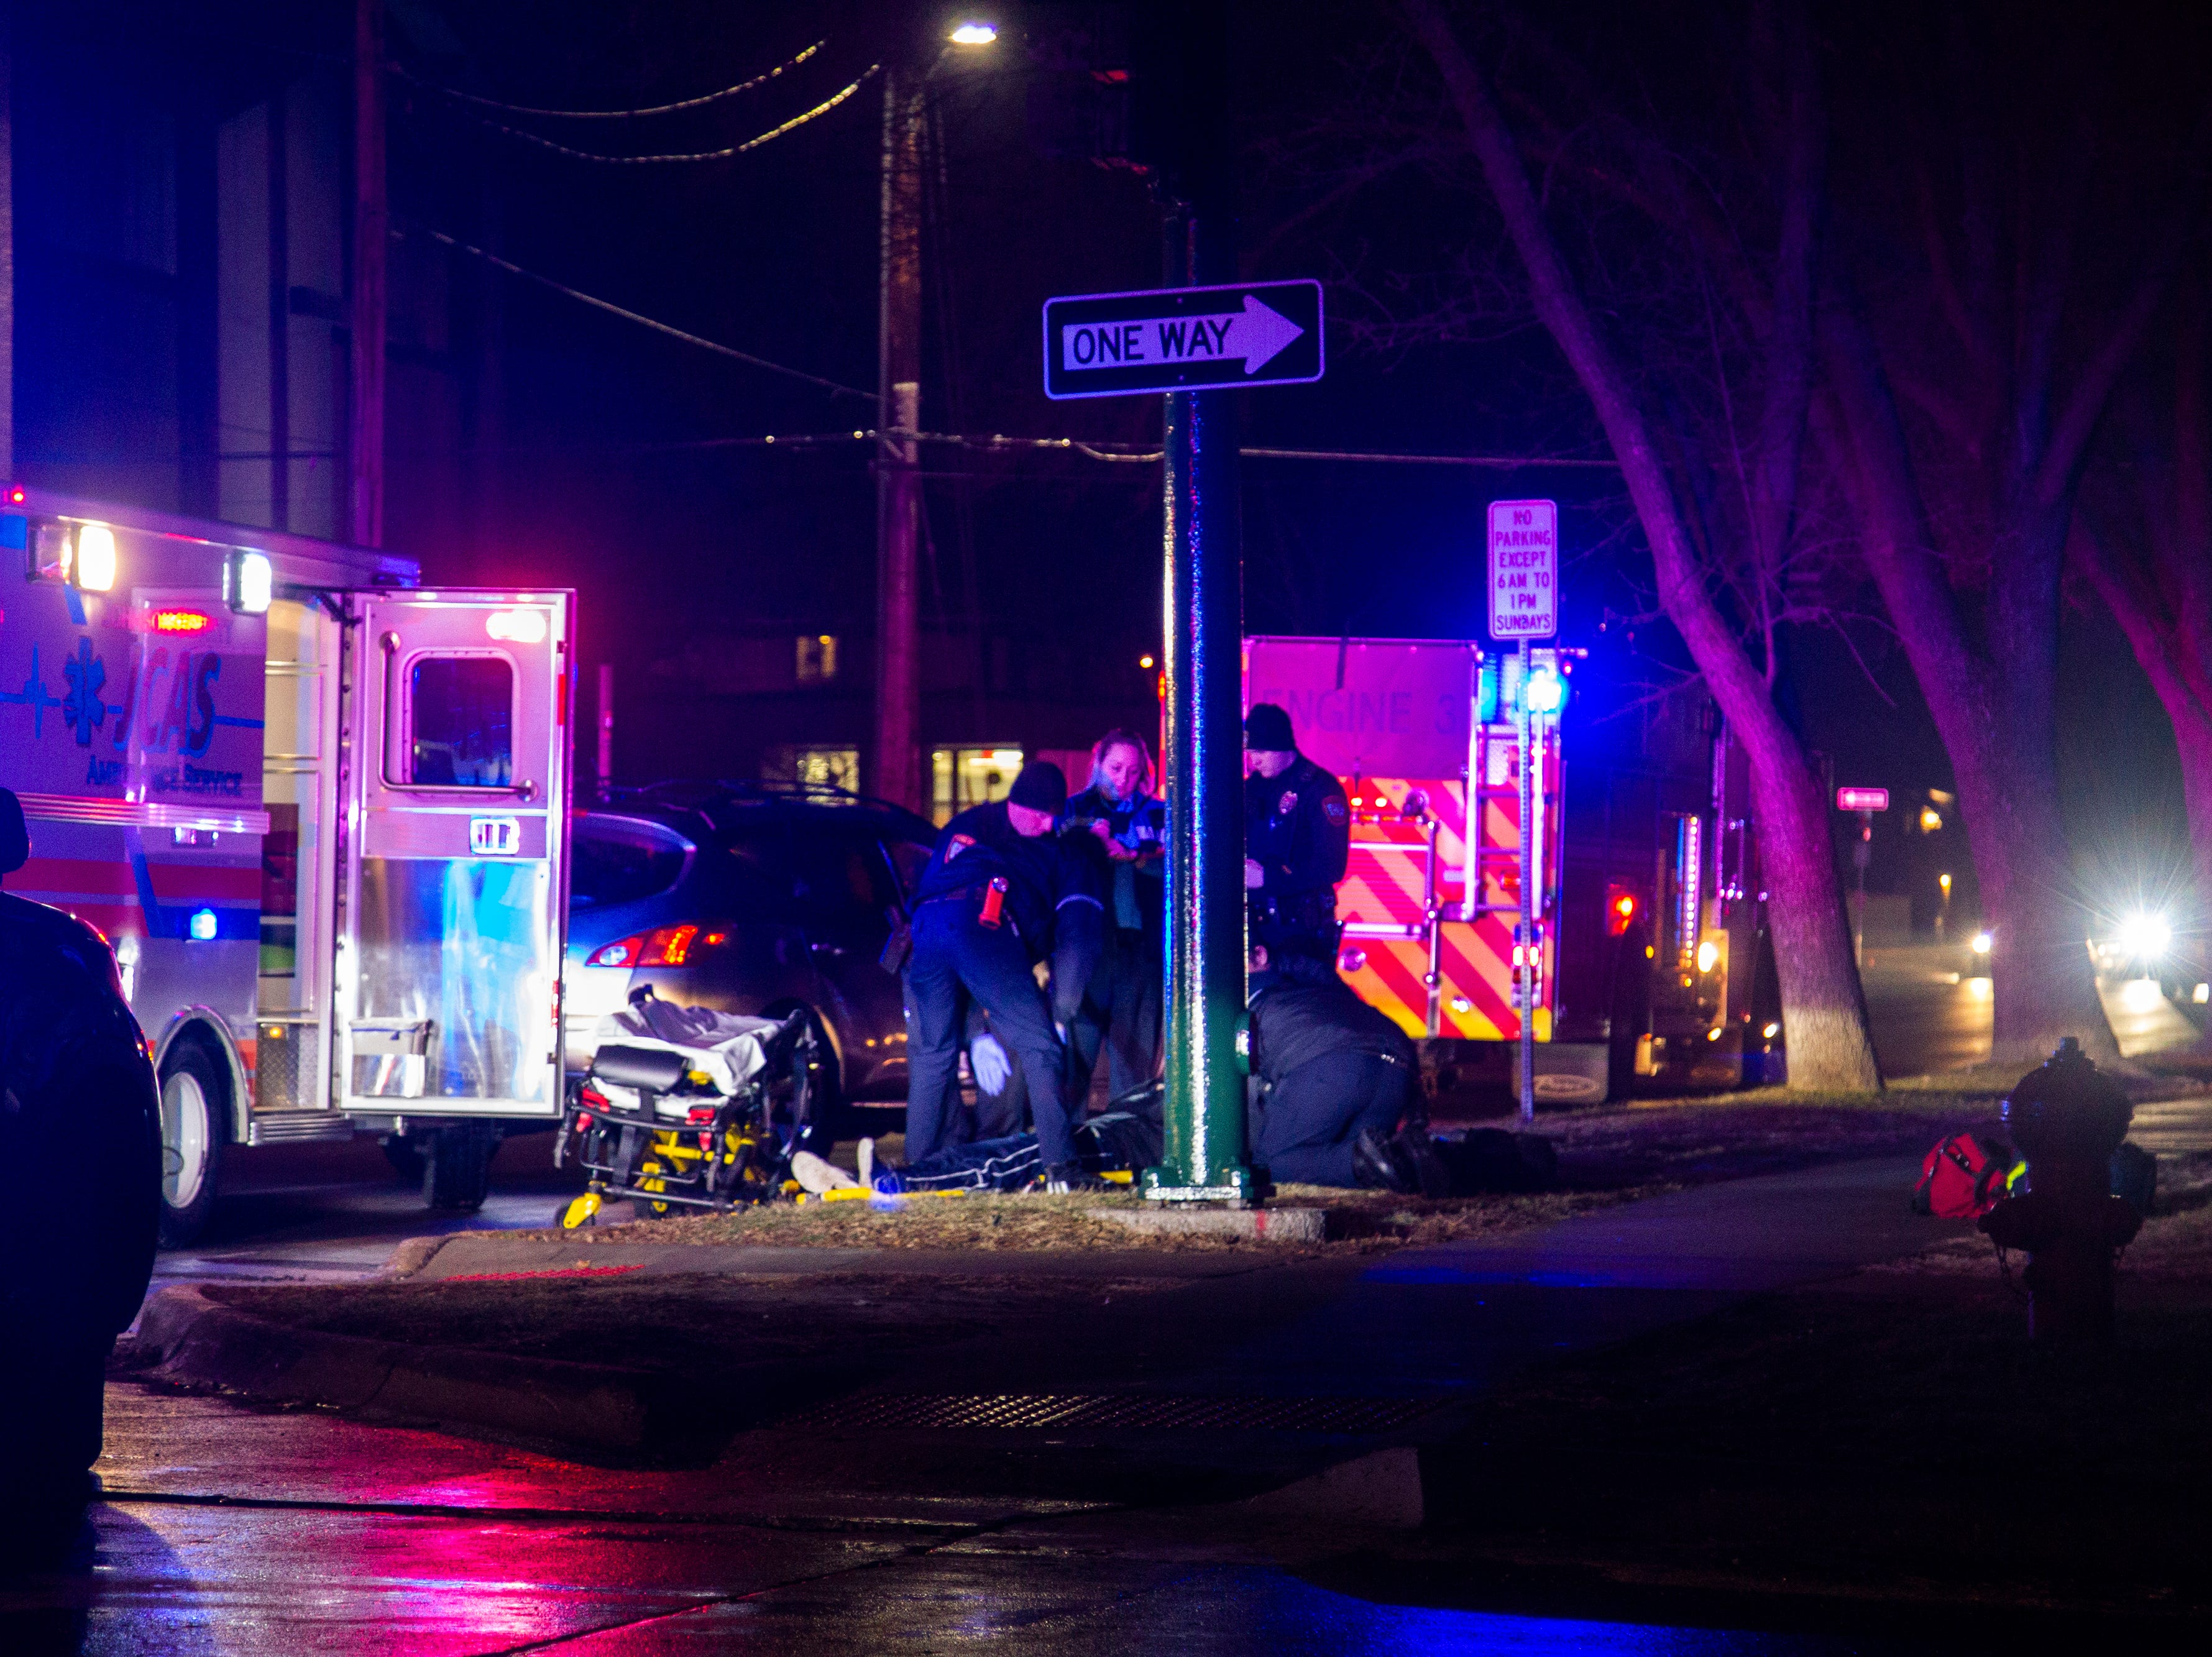 Iowa City police, firefighters and Johnson County paramedics respond to a collision involving an SUV and a pedestrian on Thursday, Dec. 13, 2018, along Dubuque Street between Jefferson and Market Streets in Iowa City.